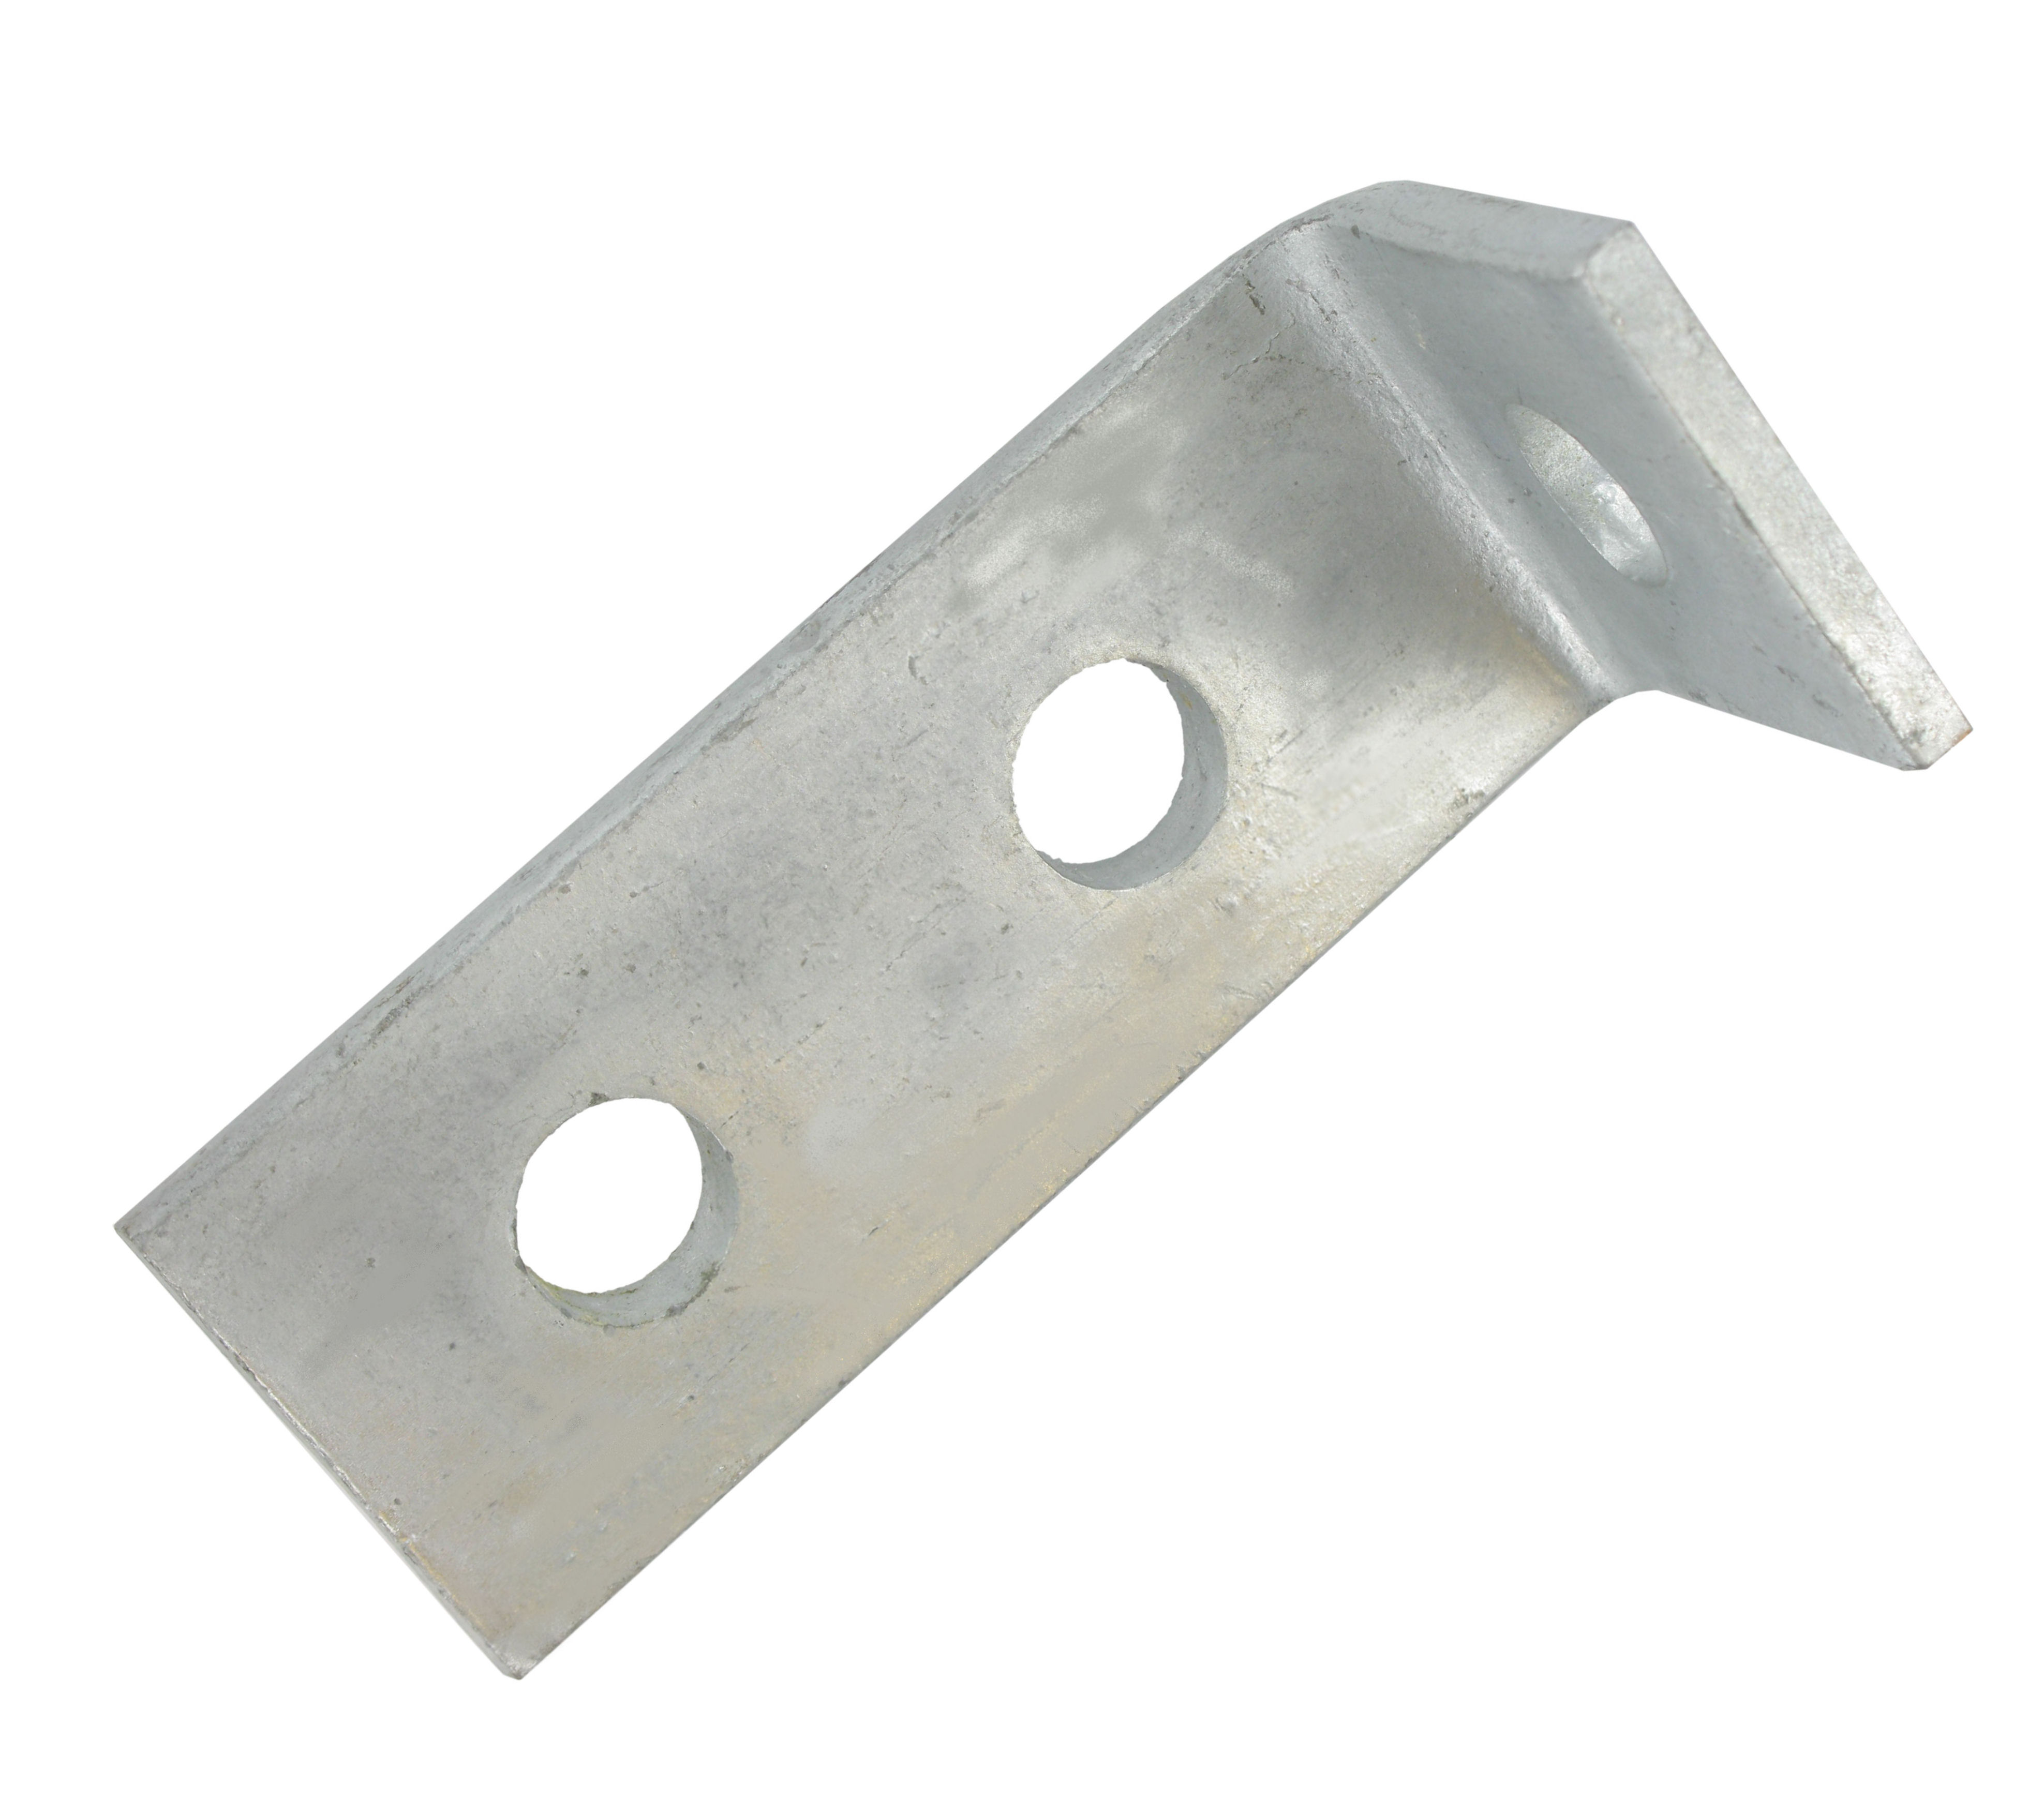 Deligo D502 Bracket 90D 2x1Hole 42x102mm